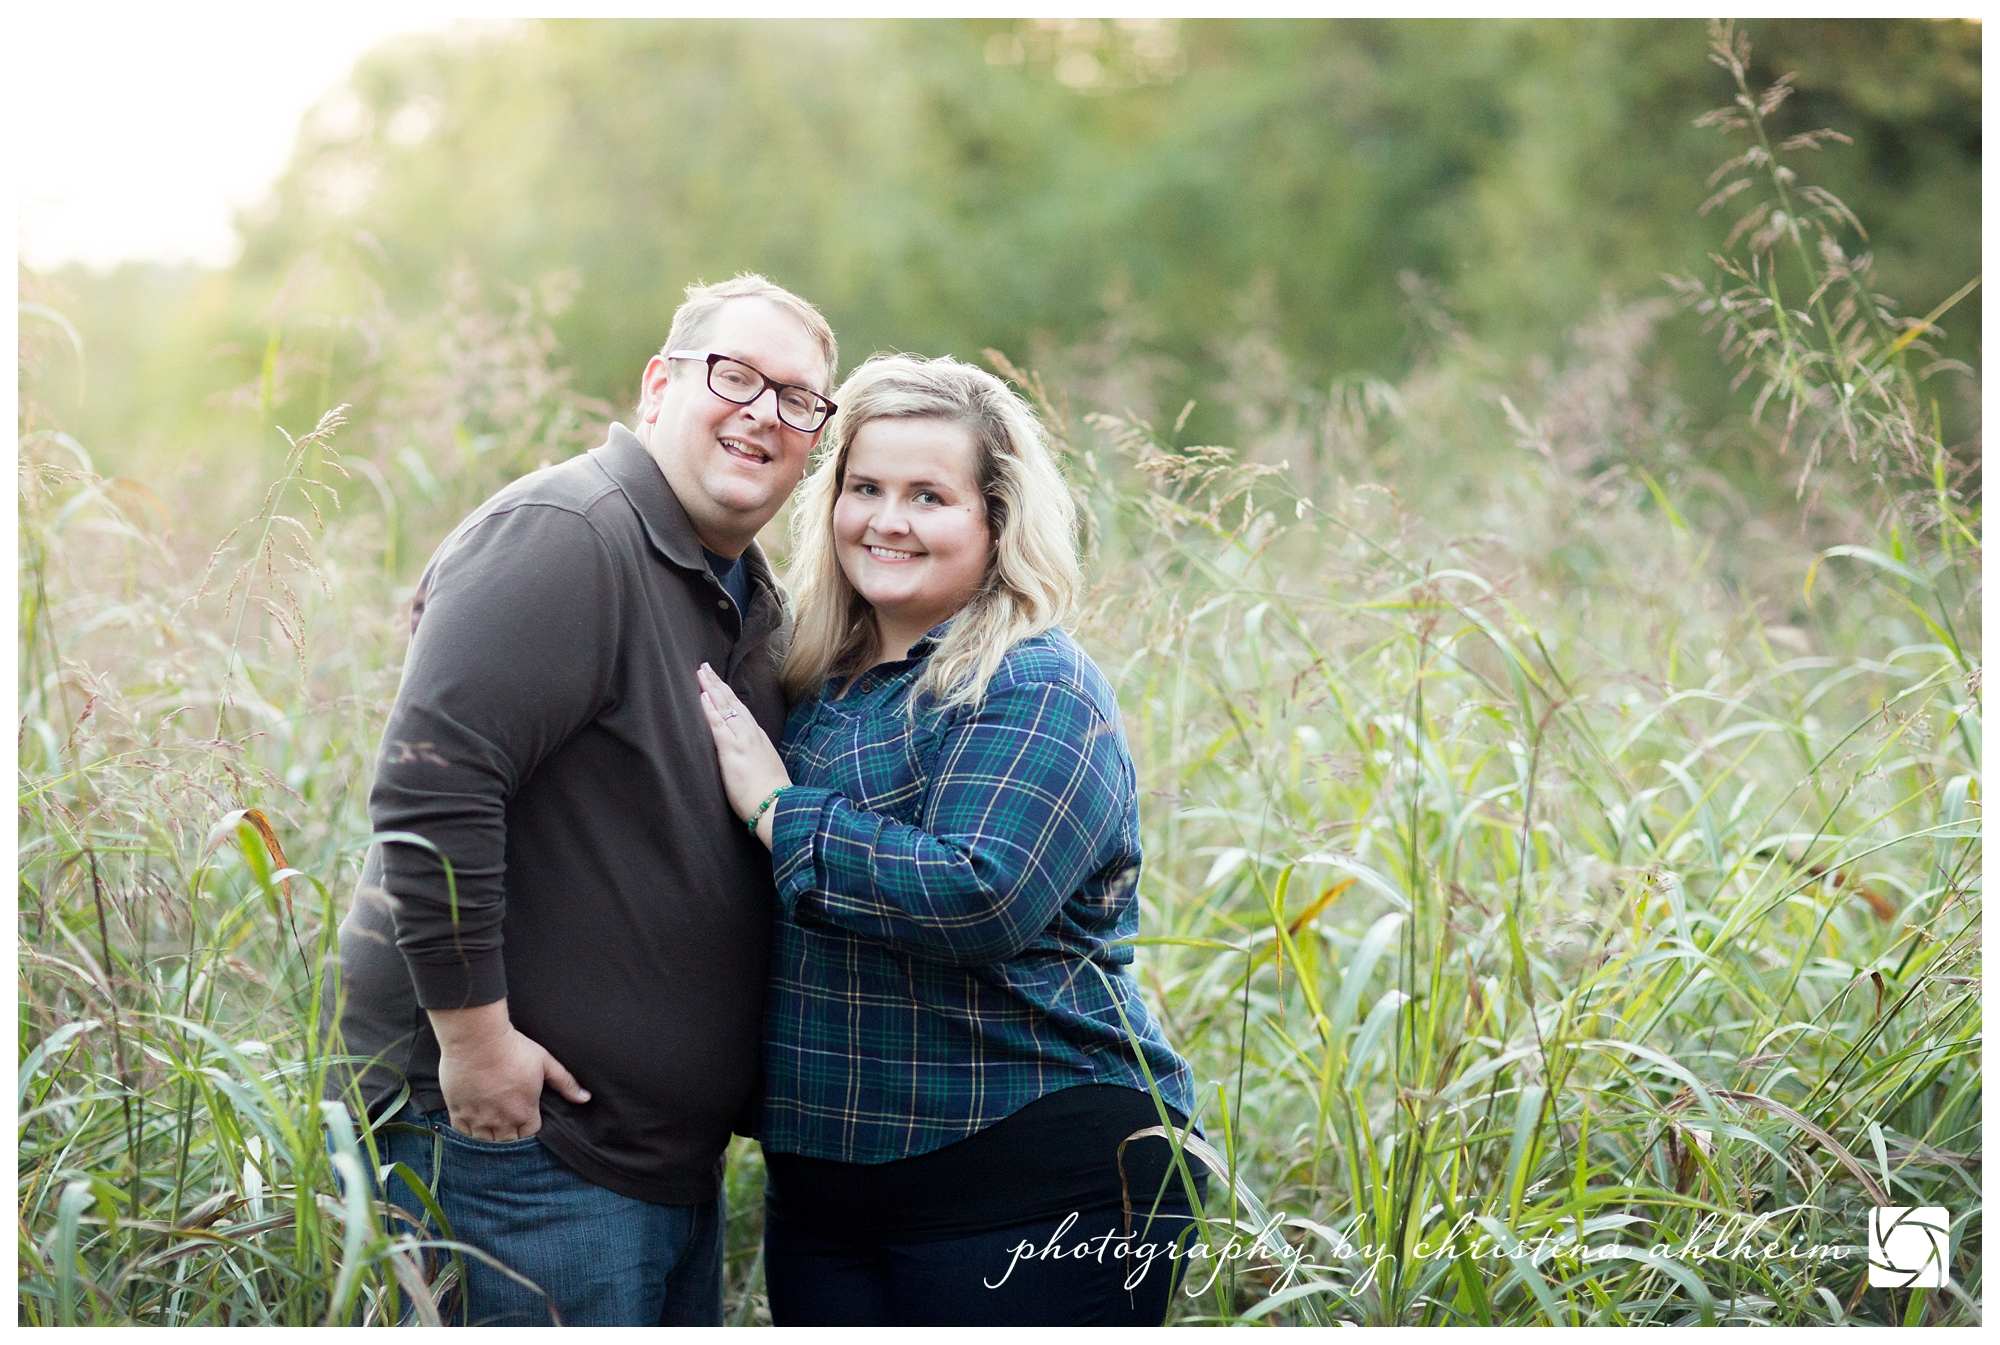 Faust Park Chesterfield Missouri Engagement Photography